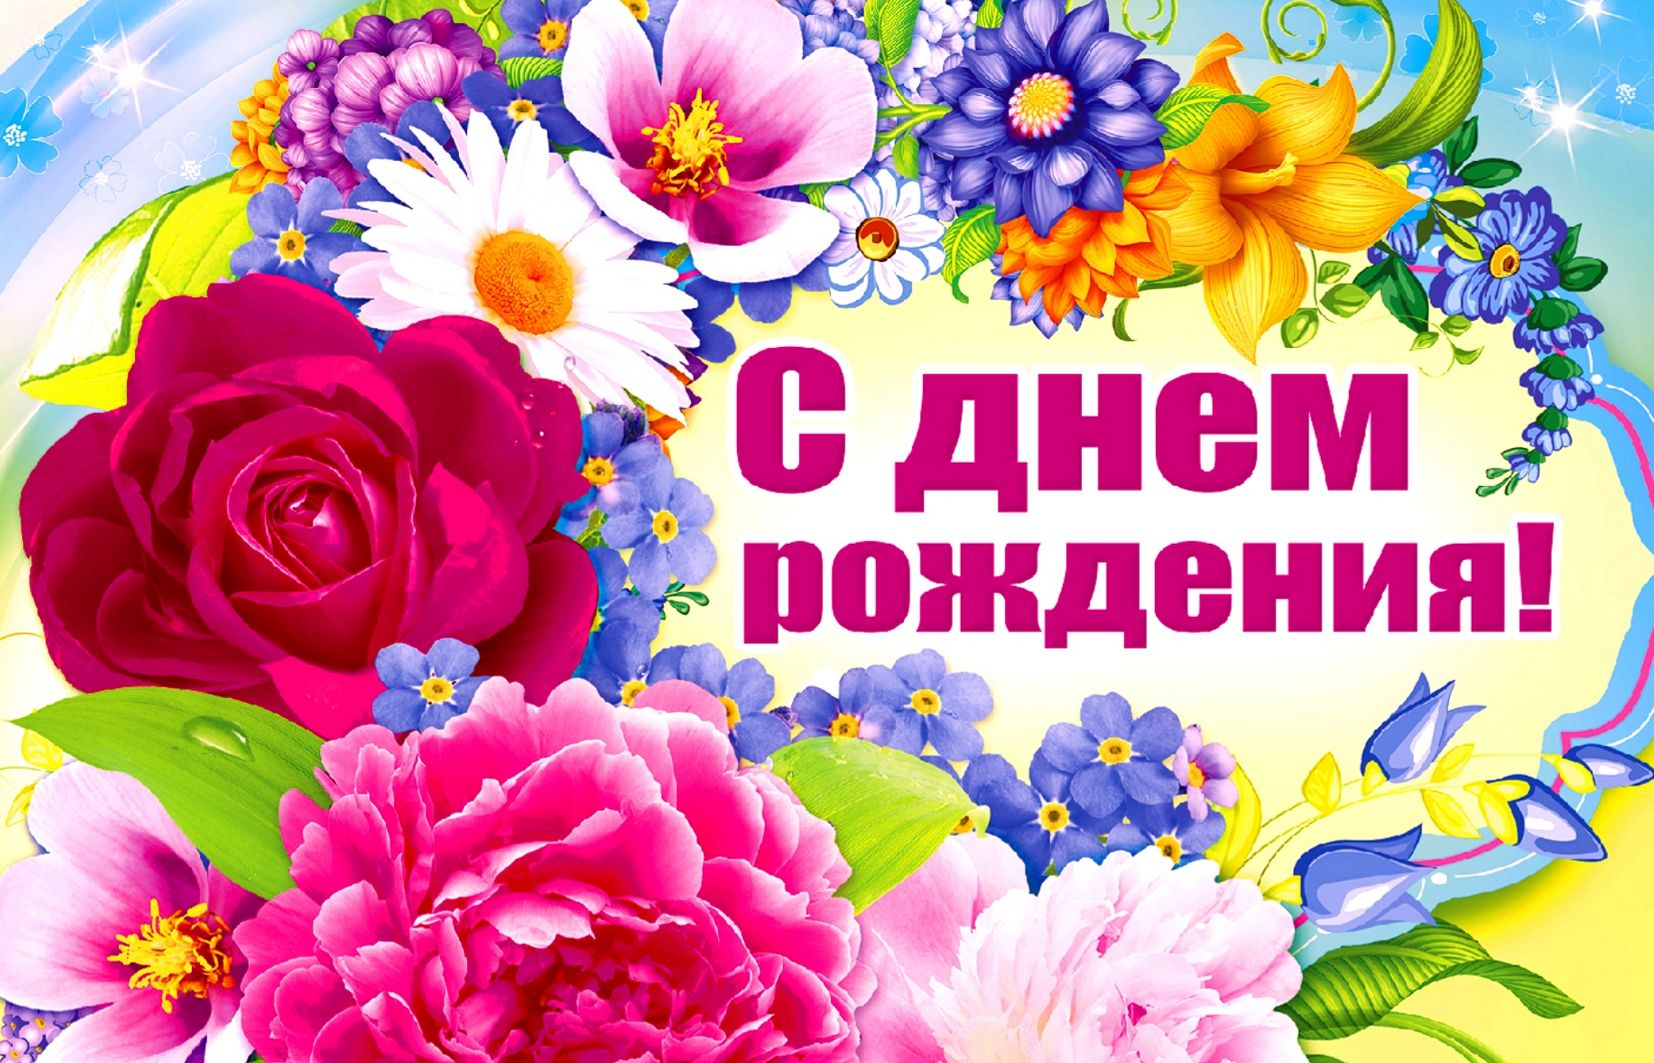 https://bonnycards.ru/images/birthday-woman/drwoman0145.jpg